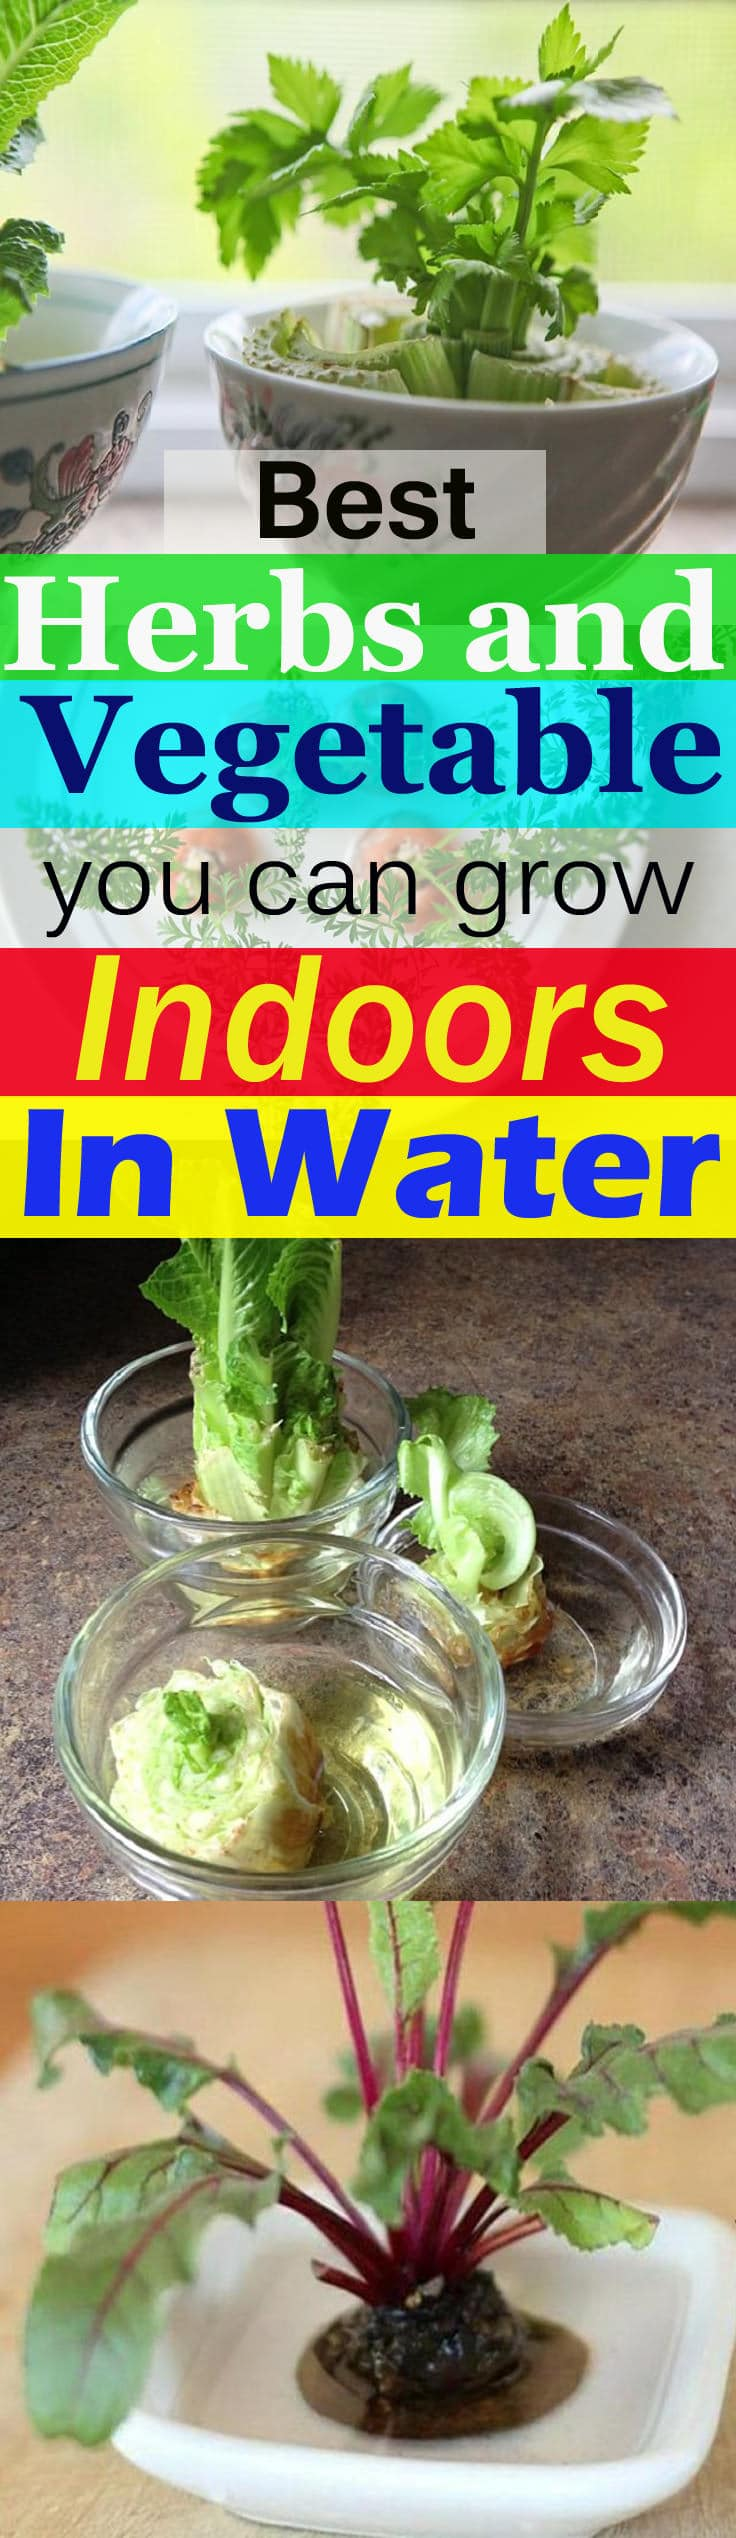 There Are Herbs And Vegetables That Regrow In Water Indoors You Can Grow Them From Ss